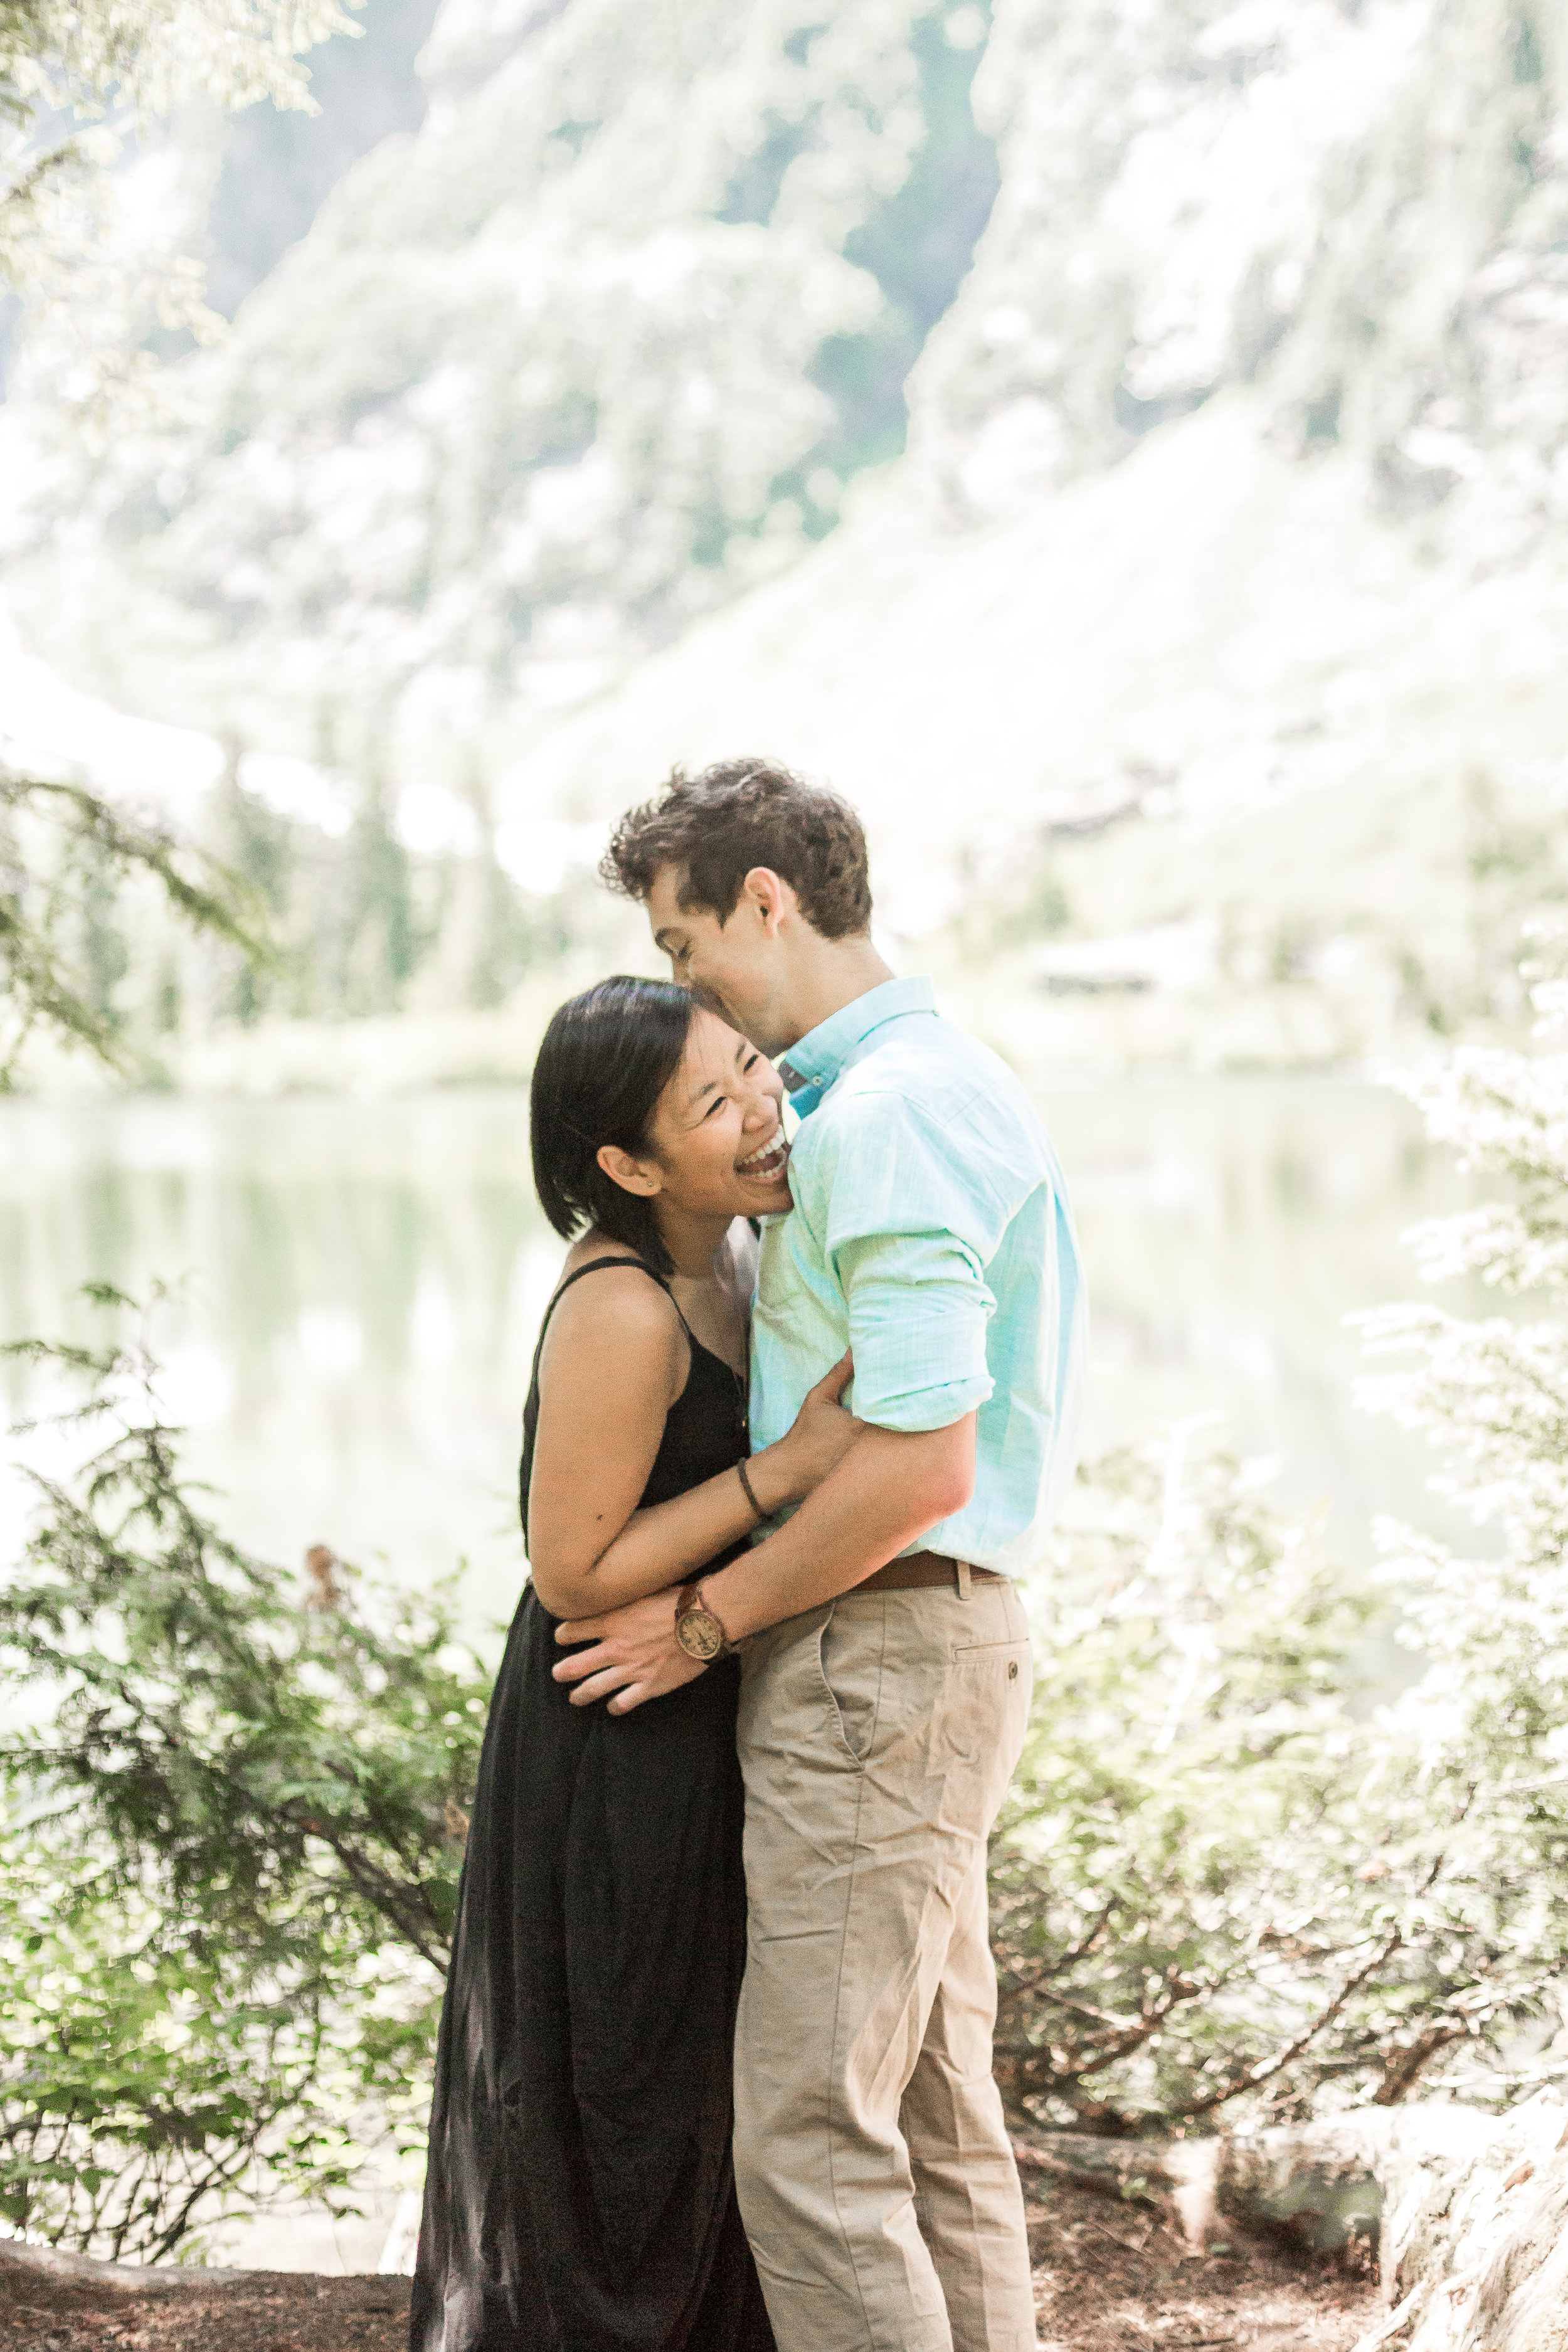 nicole-daacke-photography-hiking-engagement-session-in-snoqualmie-pass-washington-wedding-photographer-seattle-elopement-photography-adventurous-hiking-photos-heather-lake-washington-trails-1.jpg